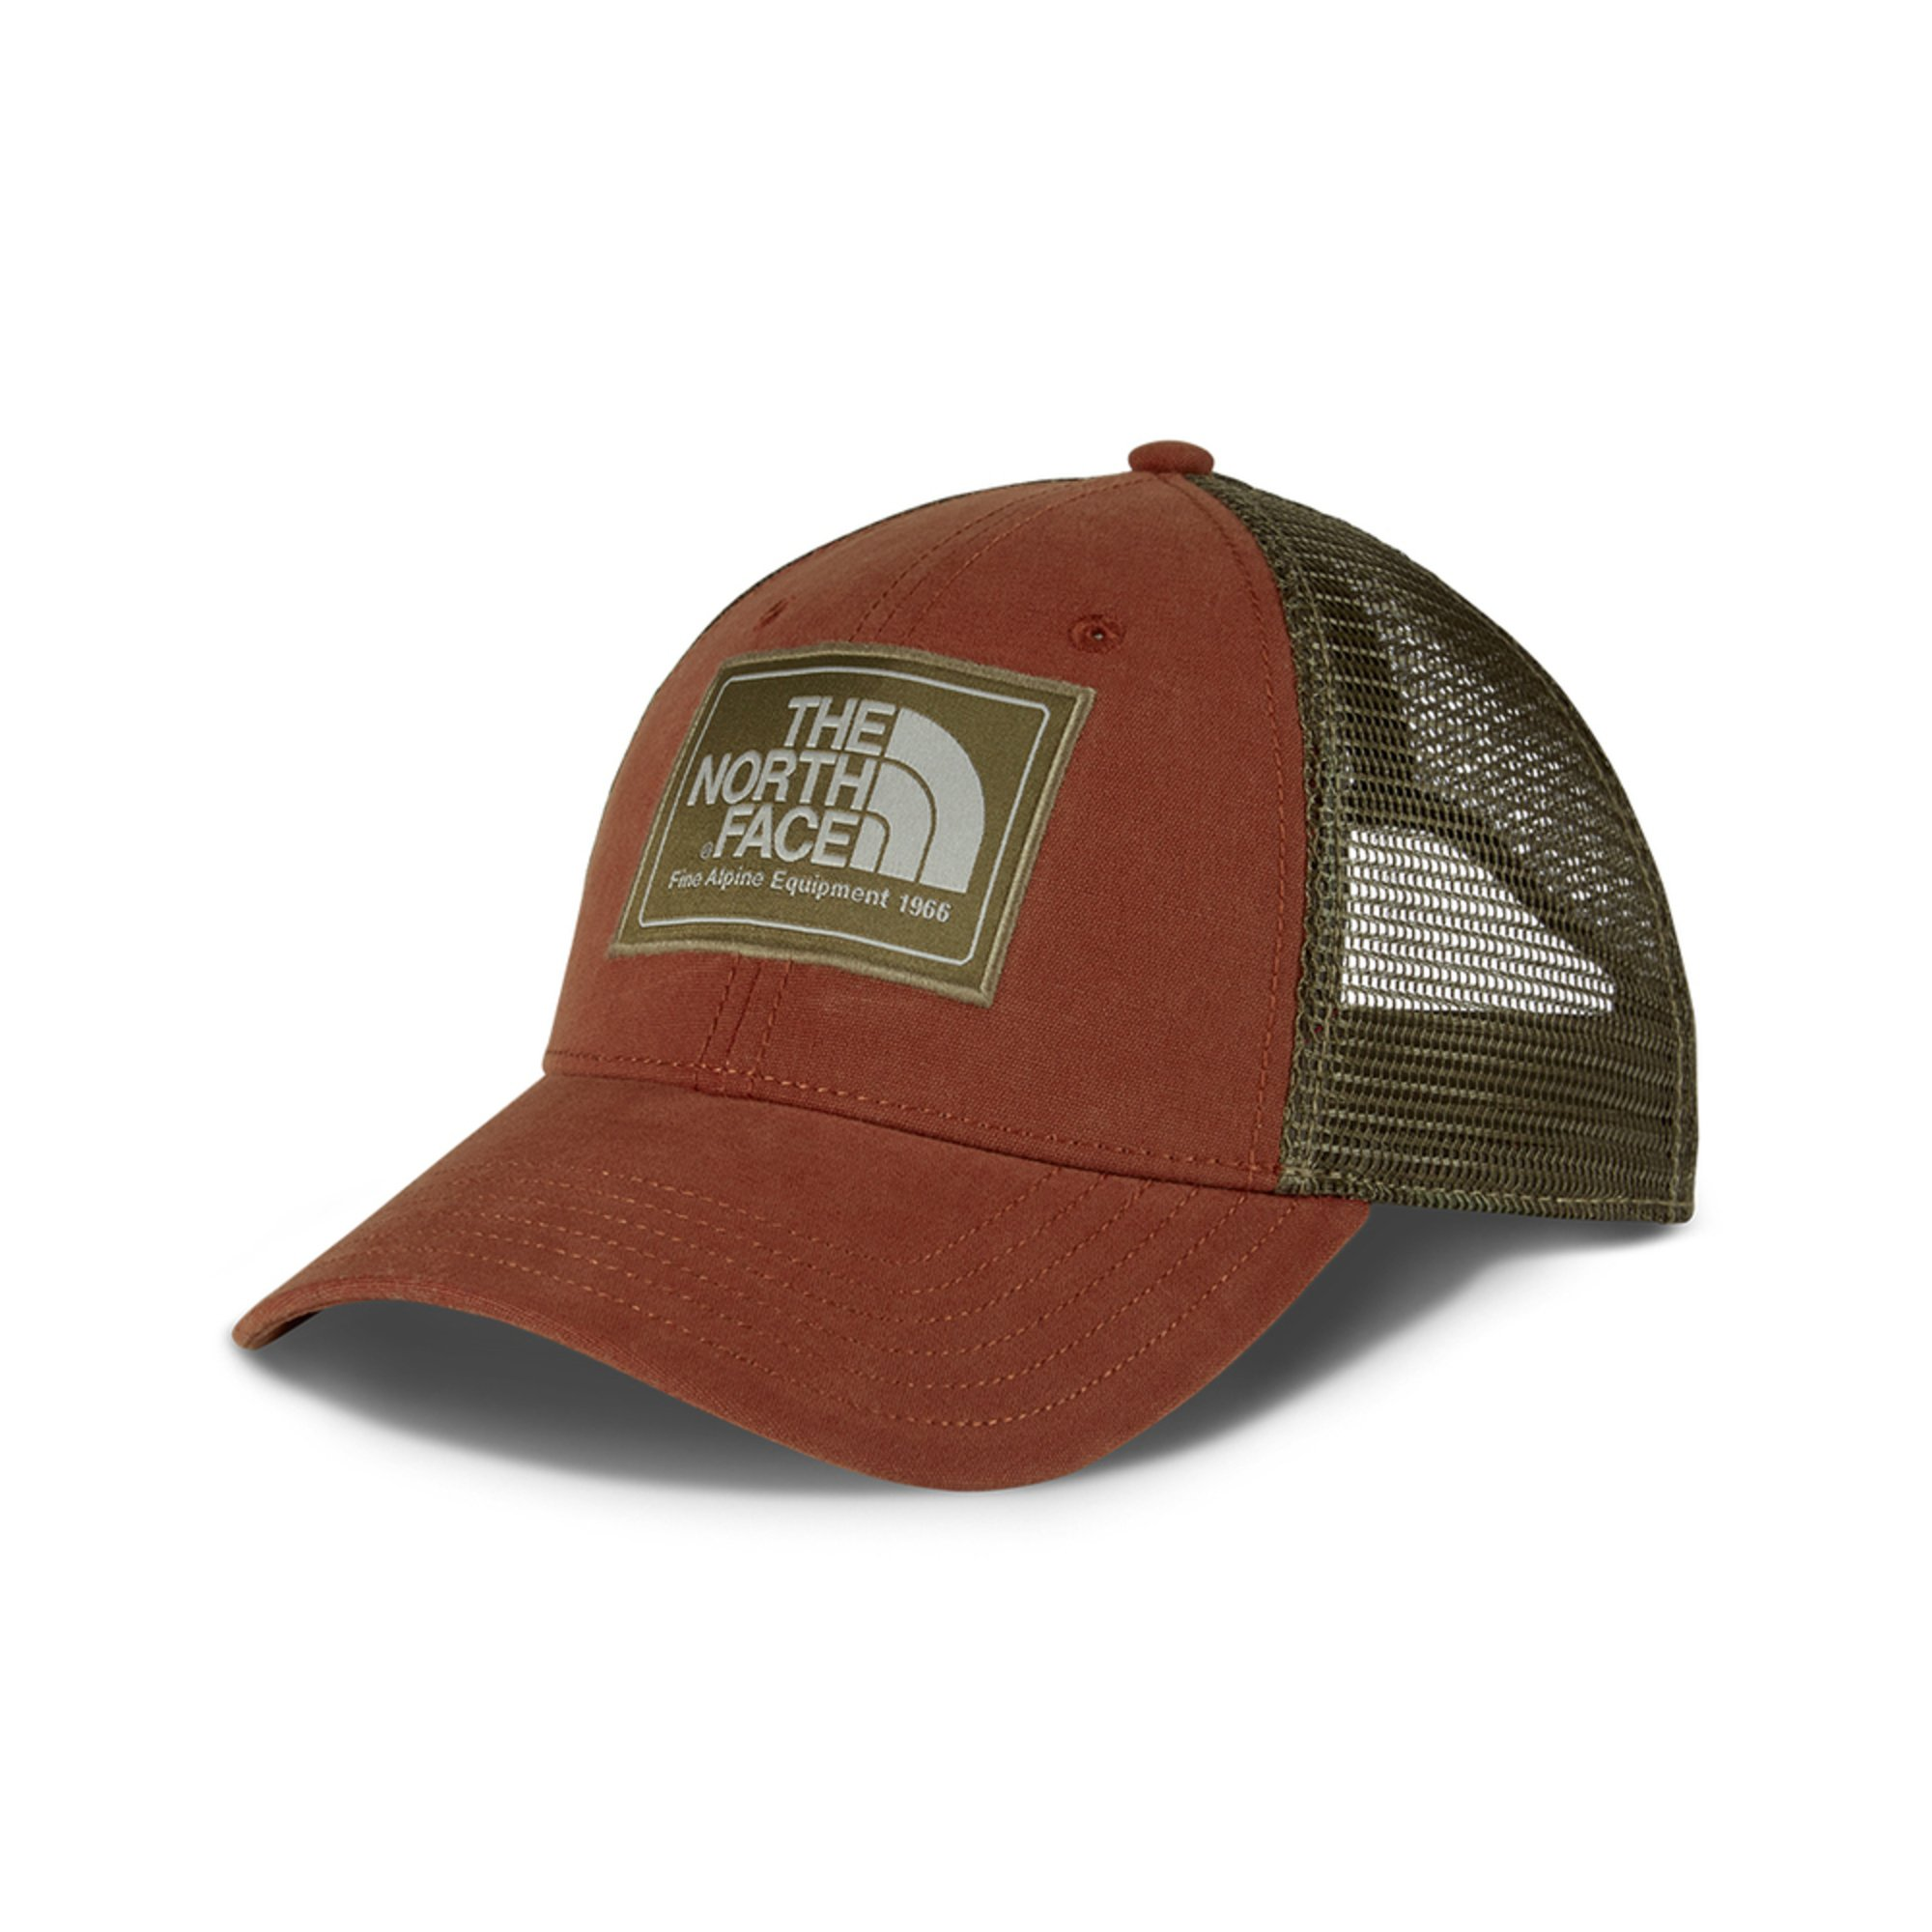 5c5adb3f29e The North Face. The North Face Men s Mudder Trucker Hat